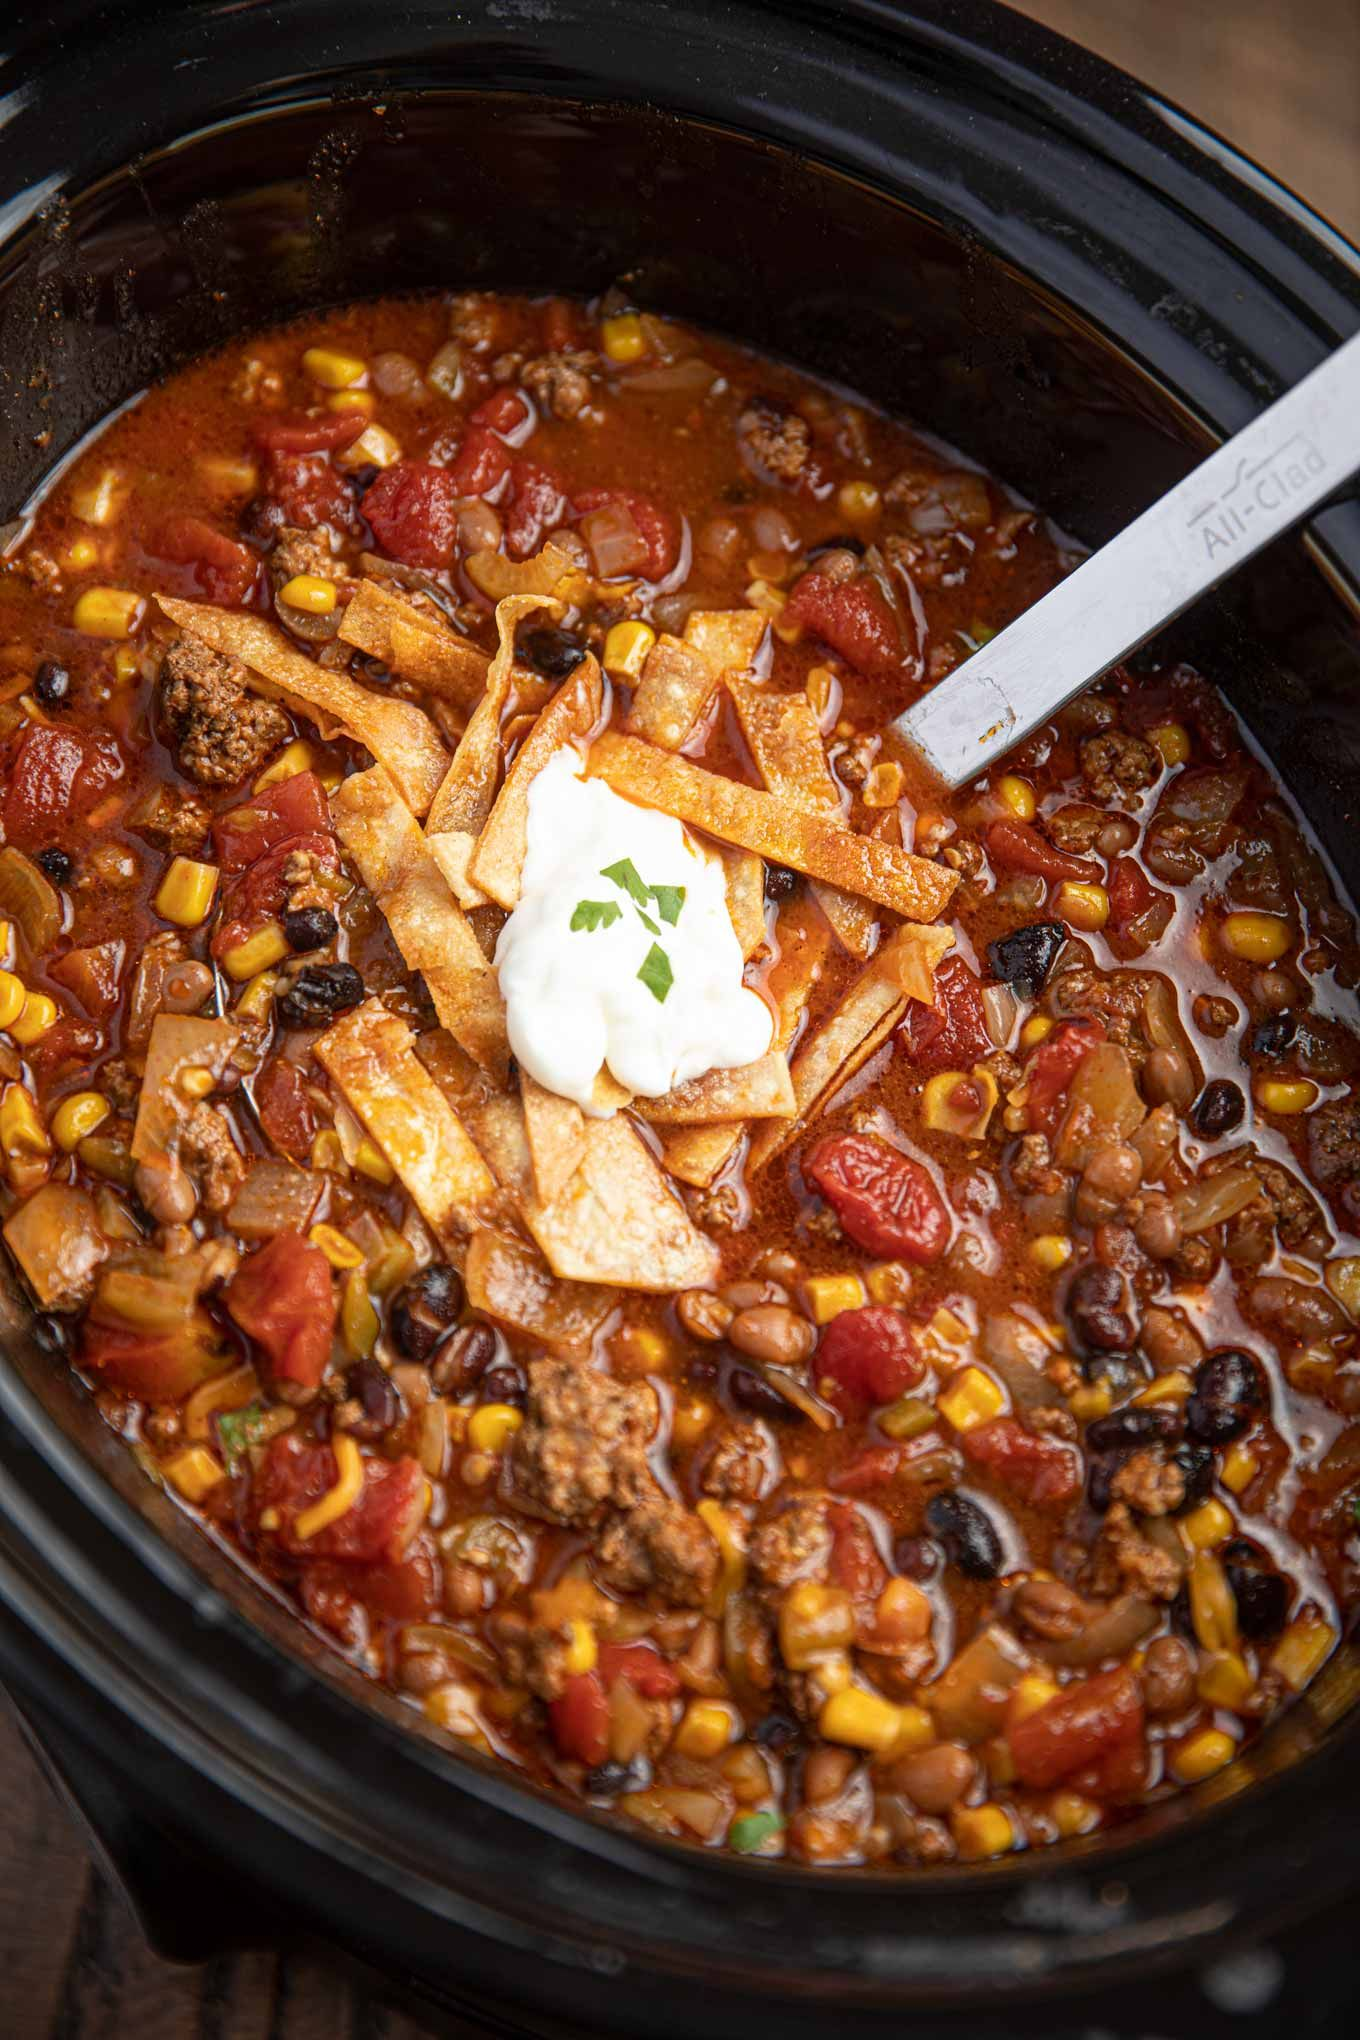 Slow Cooker Taco Soup Is An Easy Hearty Soup With Ground Beef Taco Seasoning Kidney Beans Tomatoes Slow Cooker Tacos Soup With Ground Beef Taco Soup Recipe